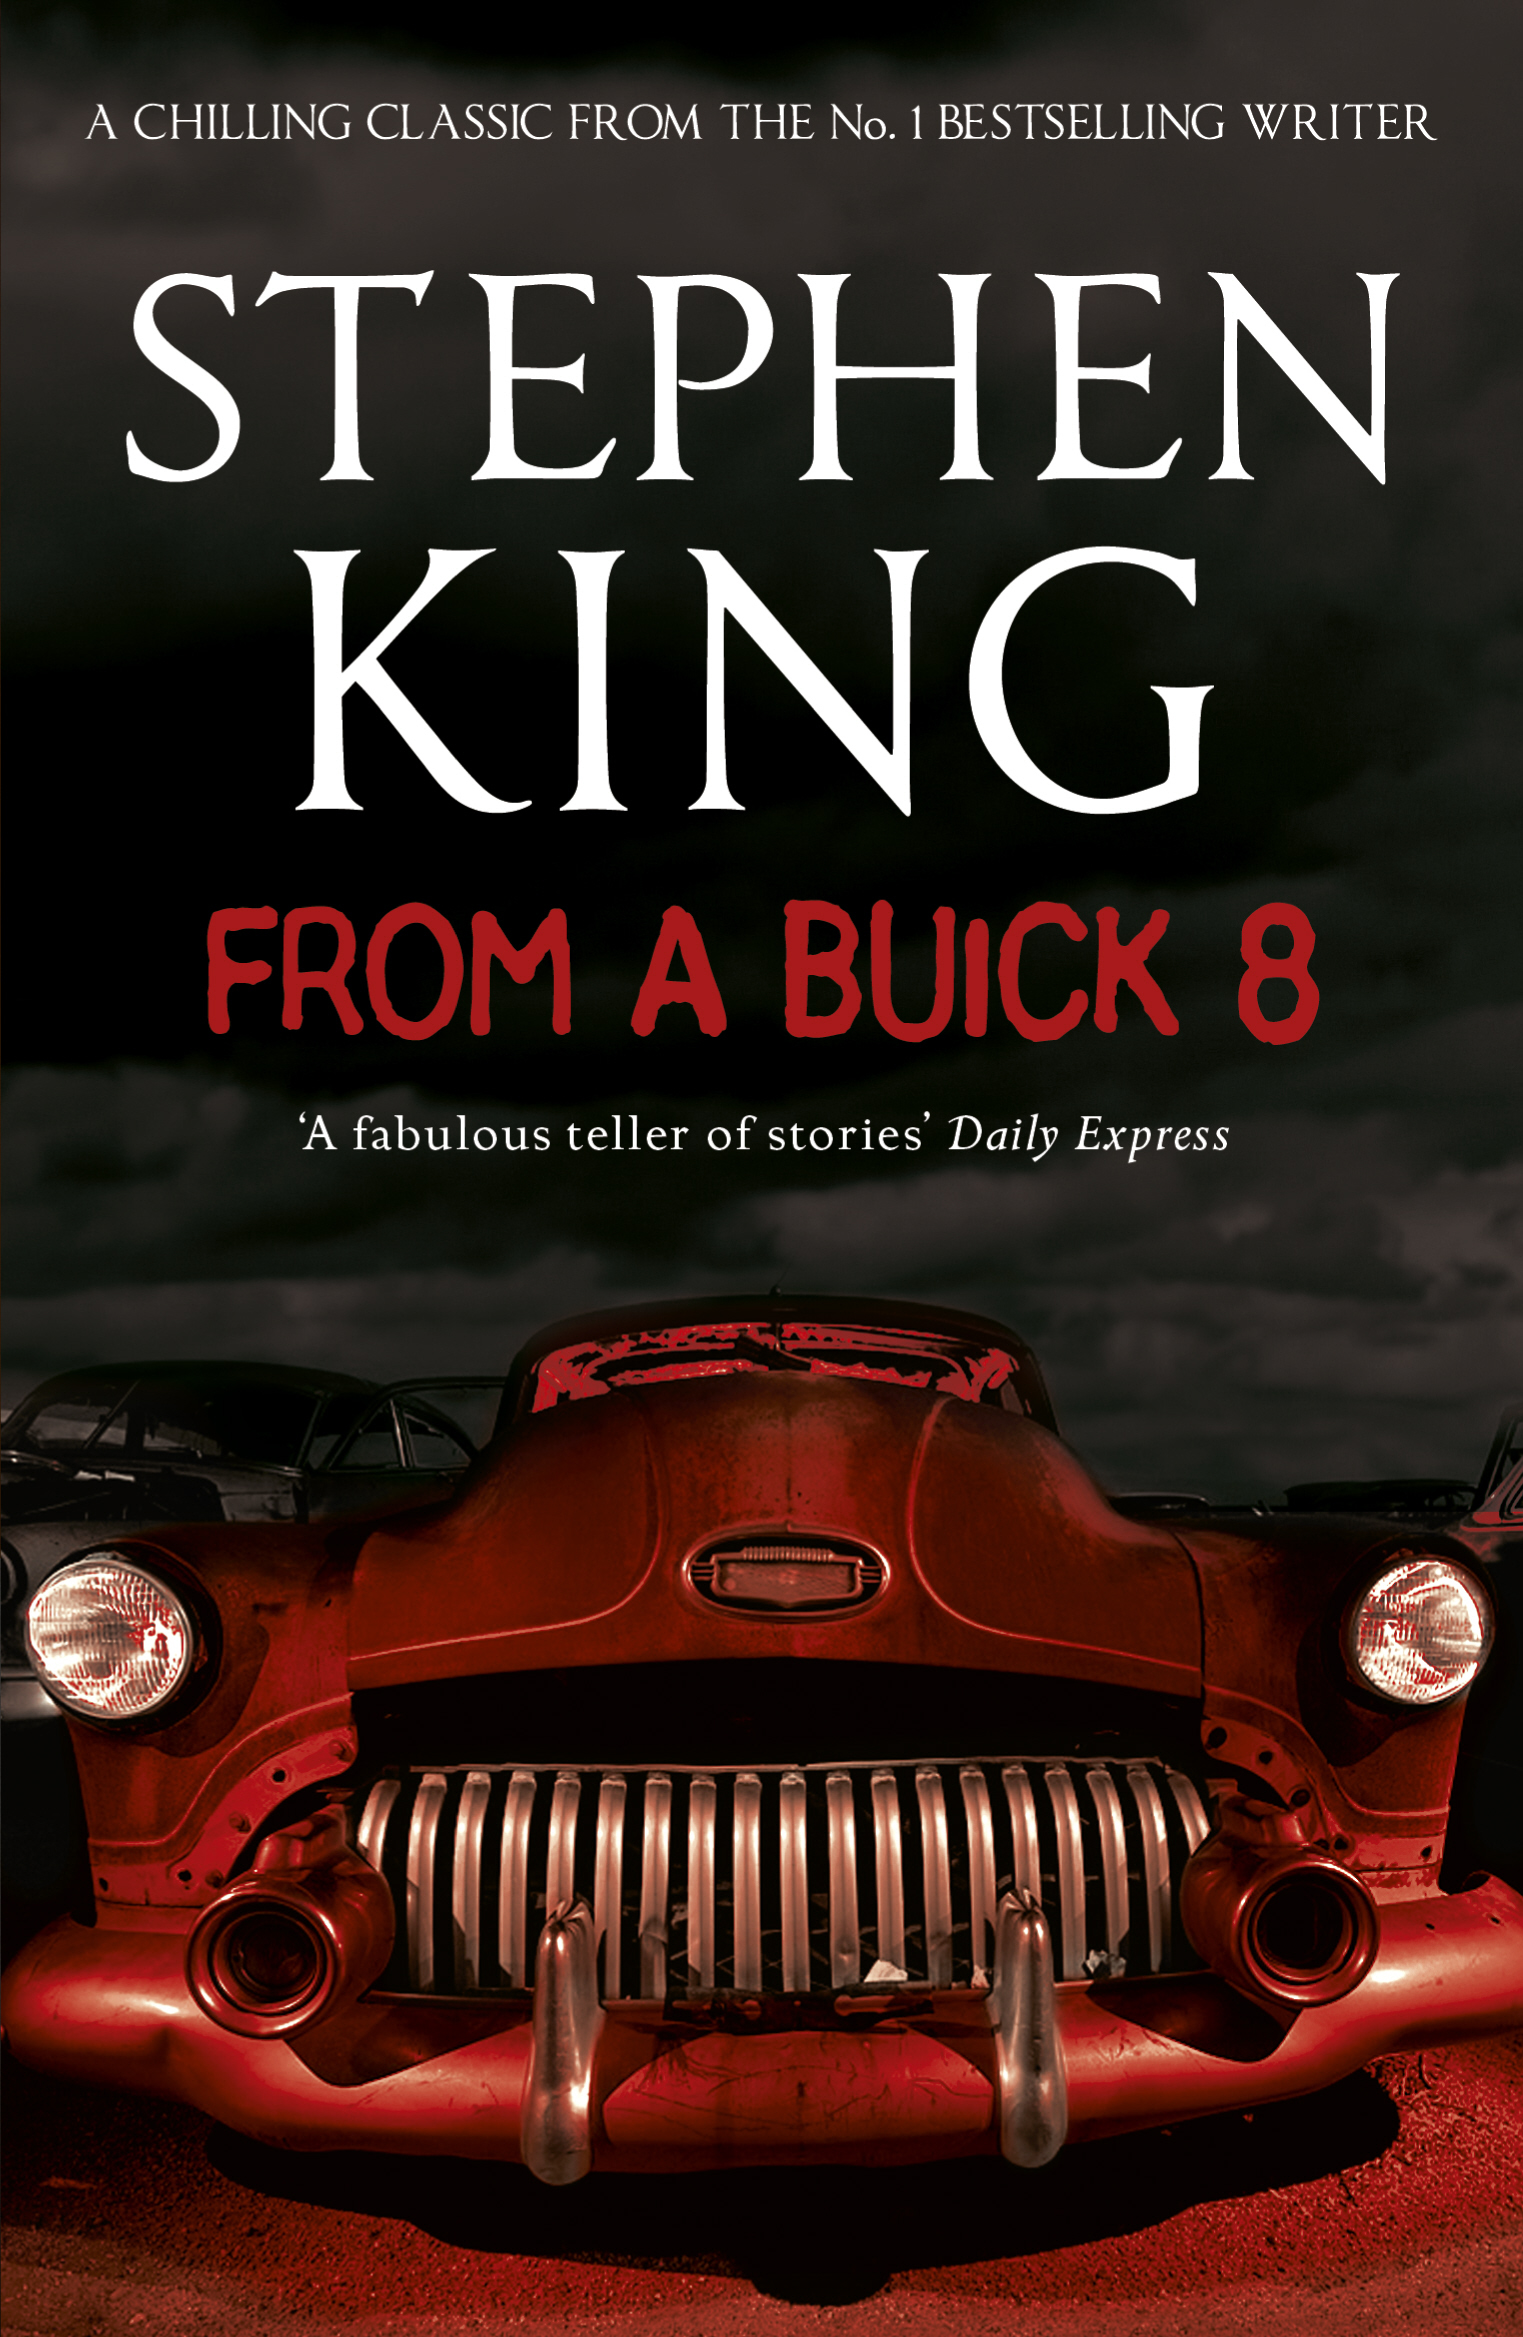 From A Buick 8- Another Stephen King Cover